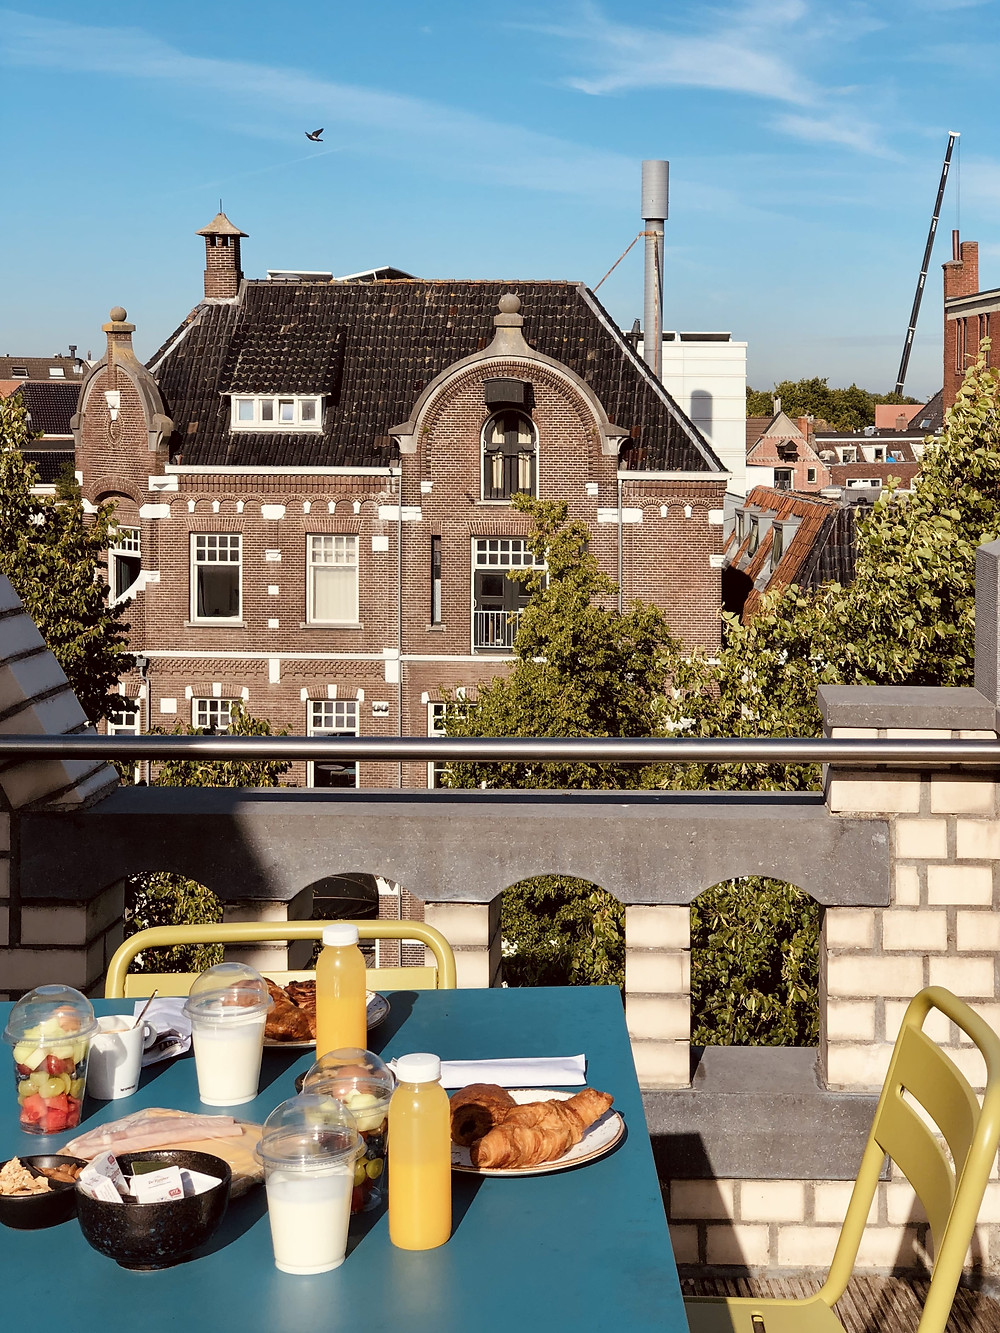 Hotel Miss Blanche rooftop terrace breakfast Groningen-The Netherlands